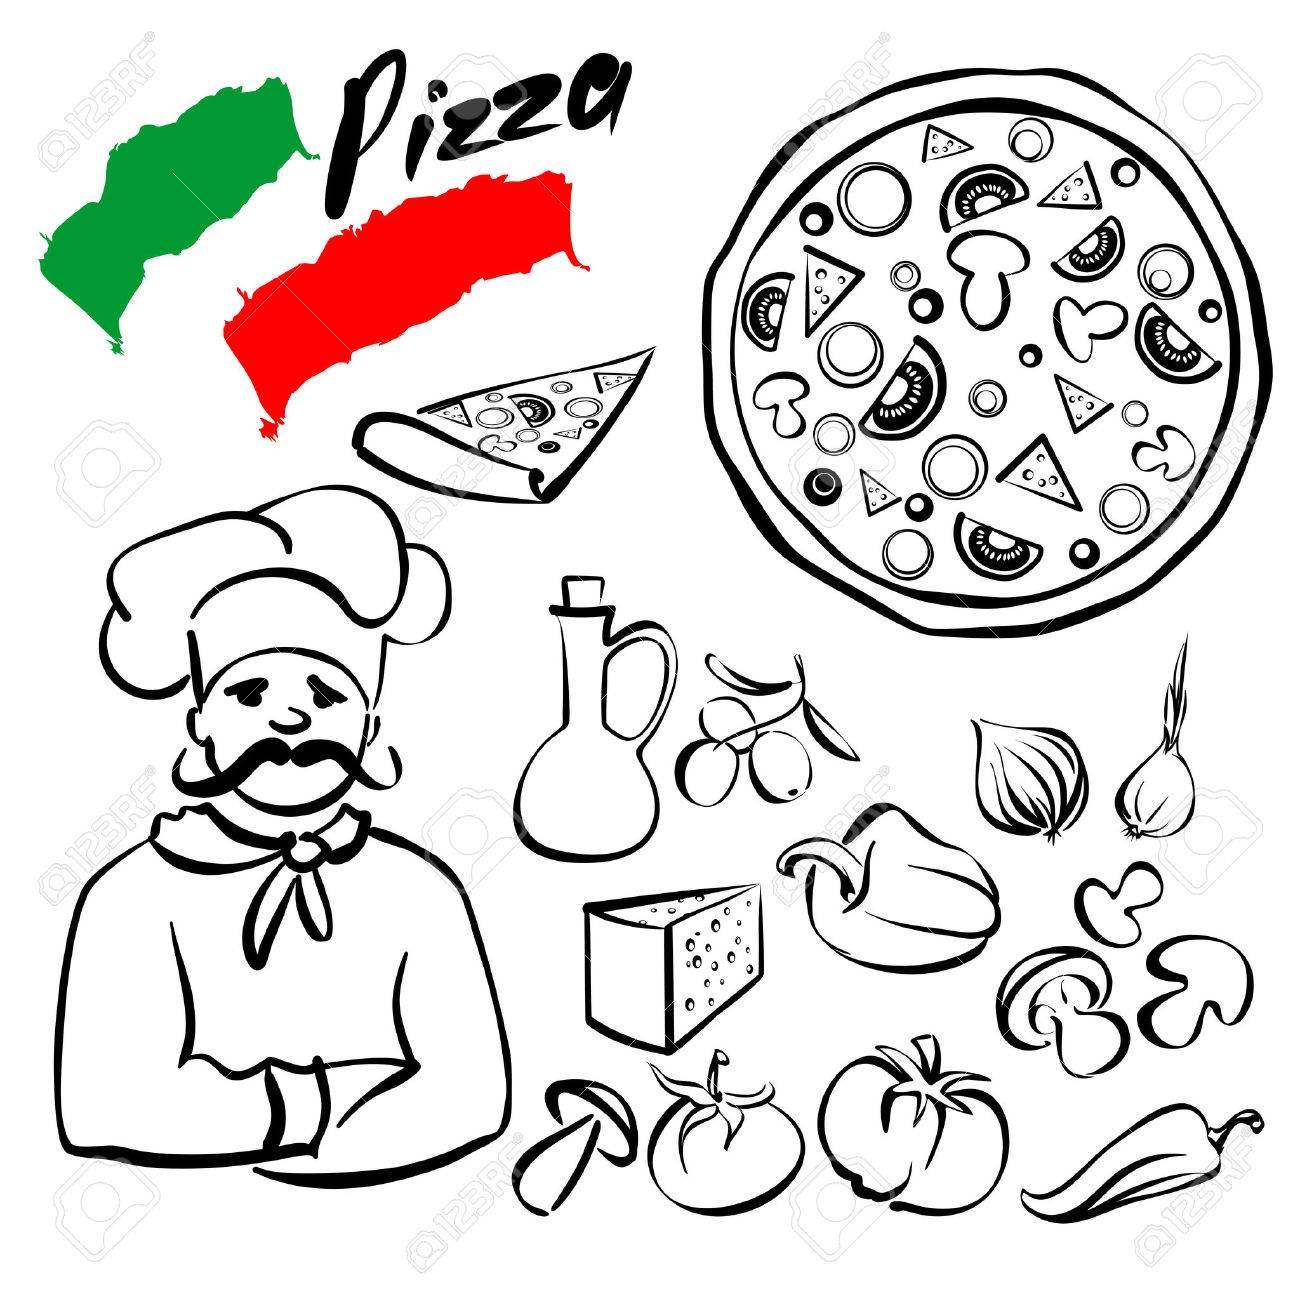 1300x1300 Pizza Collection Sketch Cartoon Vector Illustration Royalty Free